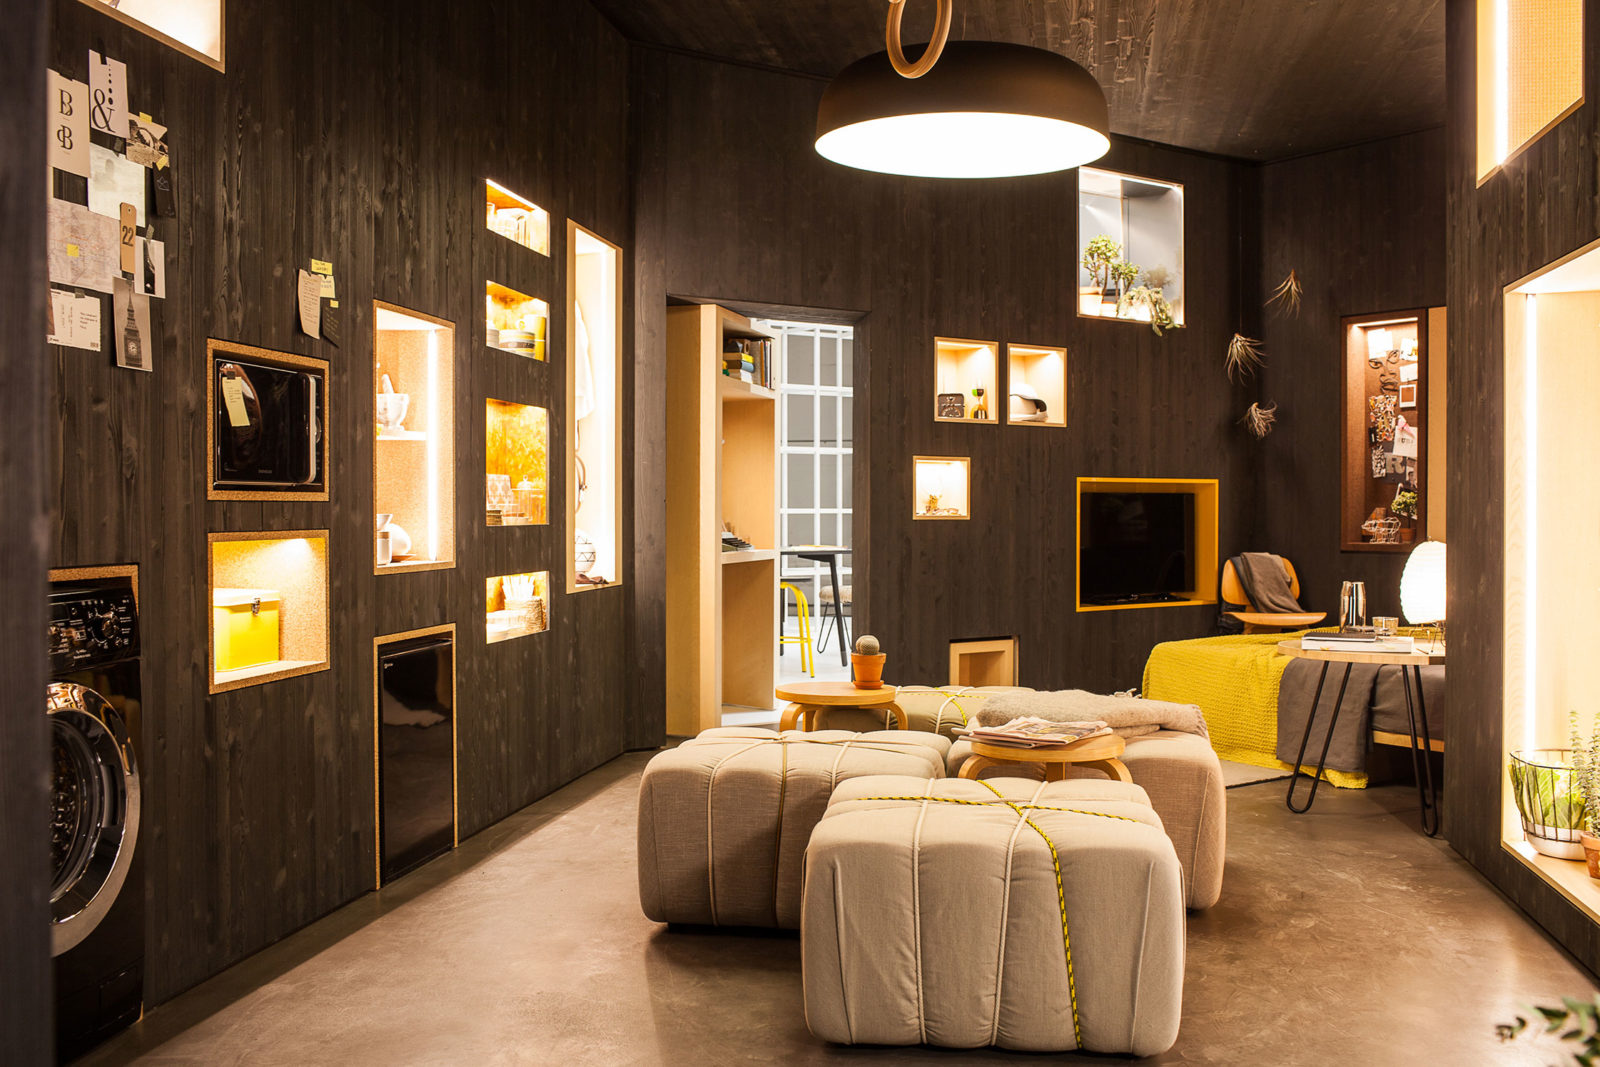 The apartment's interior space can be combined and reconfigured in many different ways.